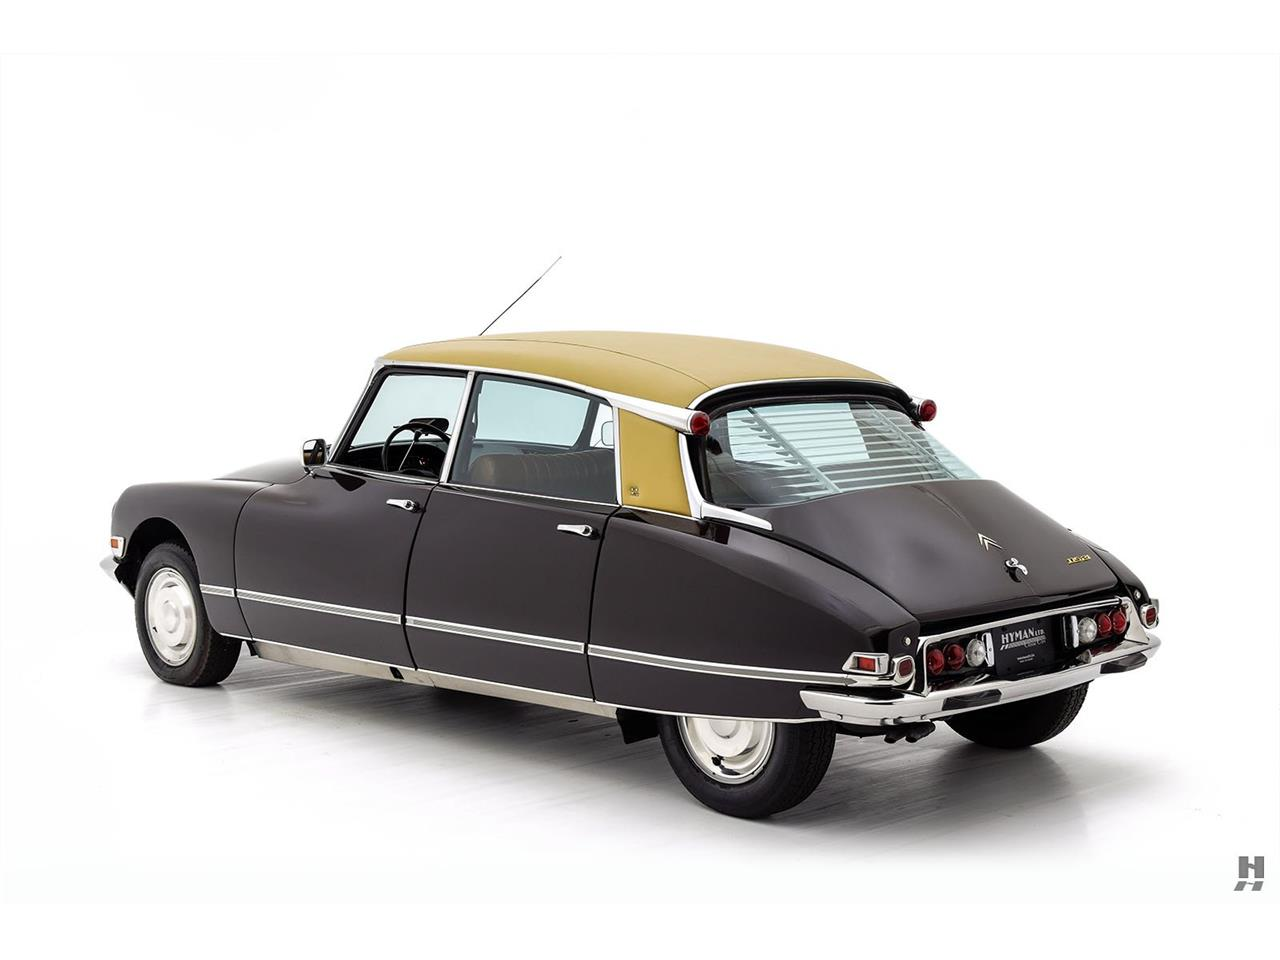 Large Picture of Classic '69 Citroen DS21 Pallas - $79,500.00 - OVD1